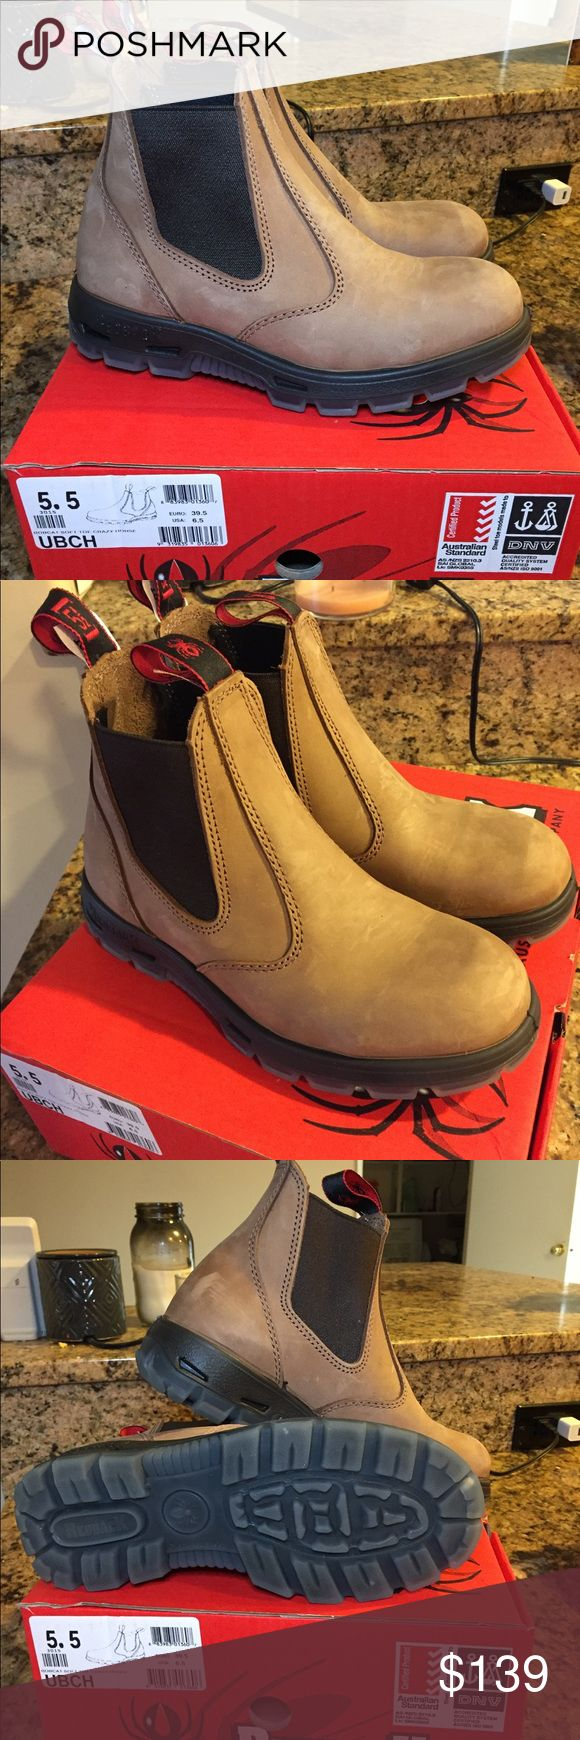 Redback Boots UBCH Never worn, brand new. Size 5.5 UK (8 women/6.5 men) they are very comfortable and will last for a couple years! Redback boots Shoes Ankle Boots & Booties